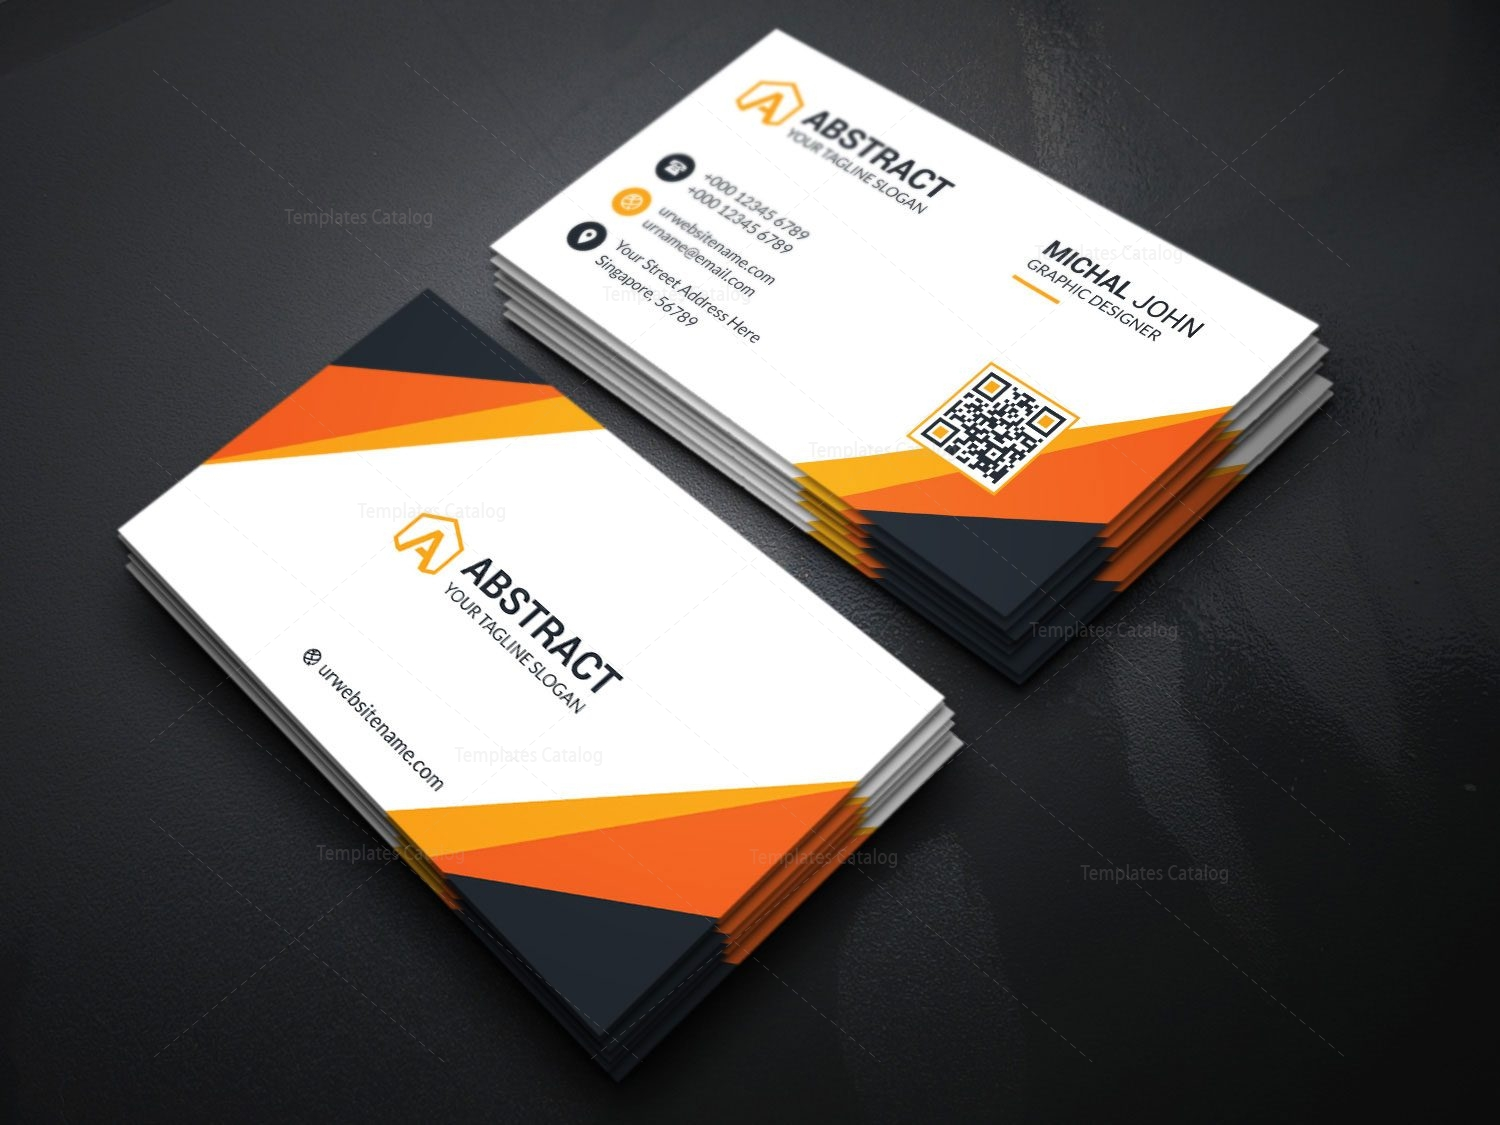 Visiting card template for companies 000175 template catalog visiting card template for companies cheaphphosting Images